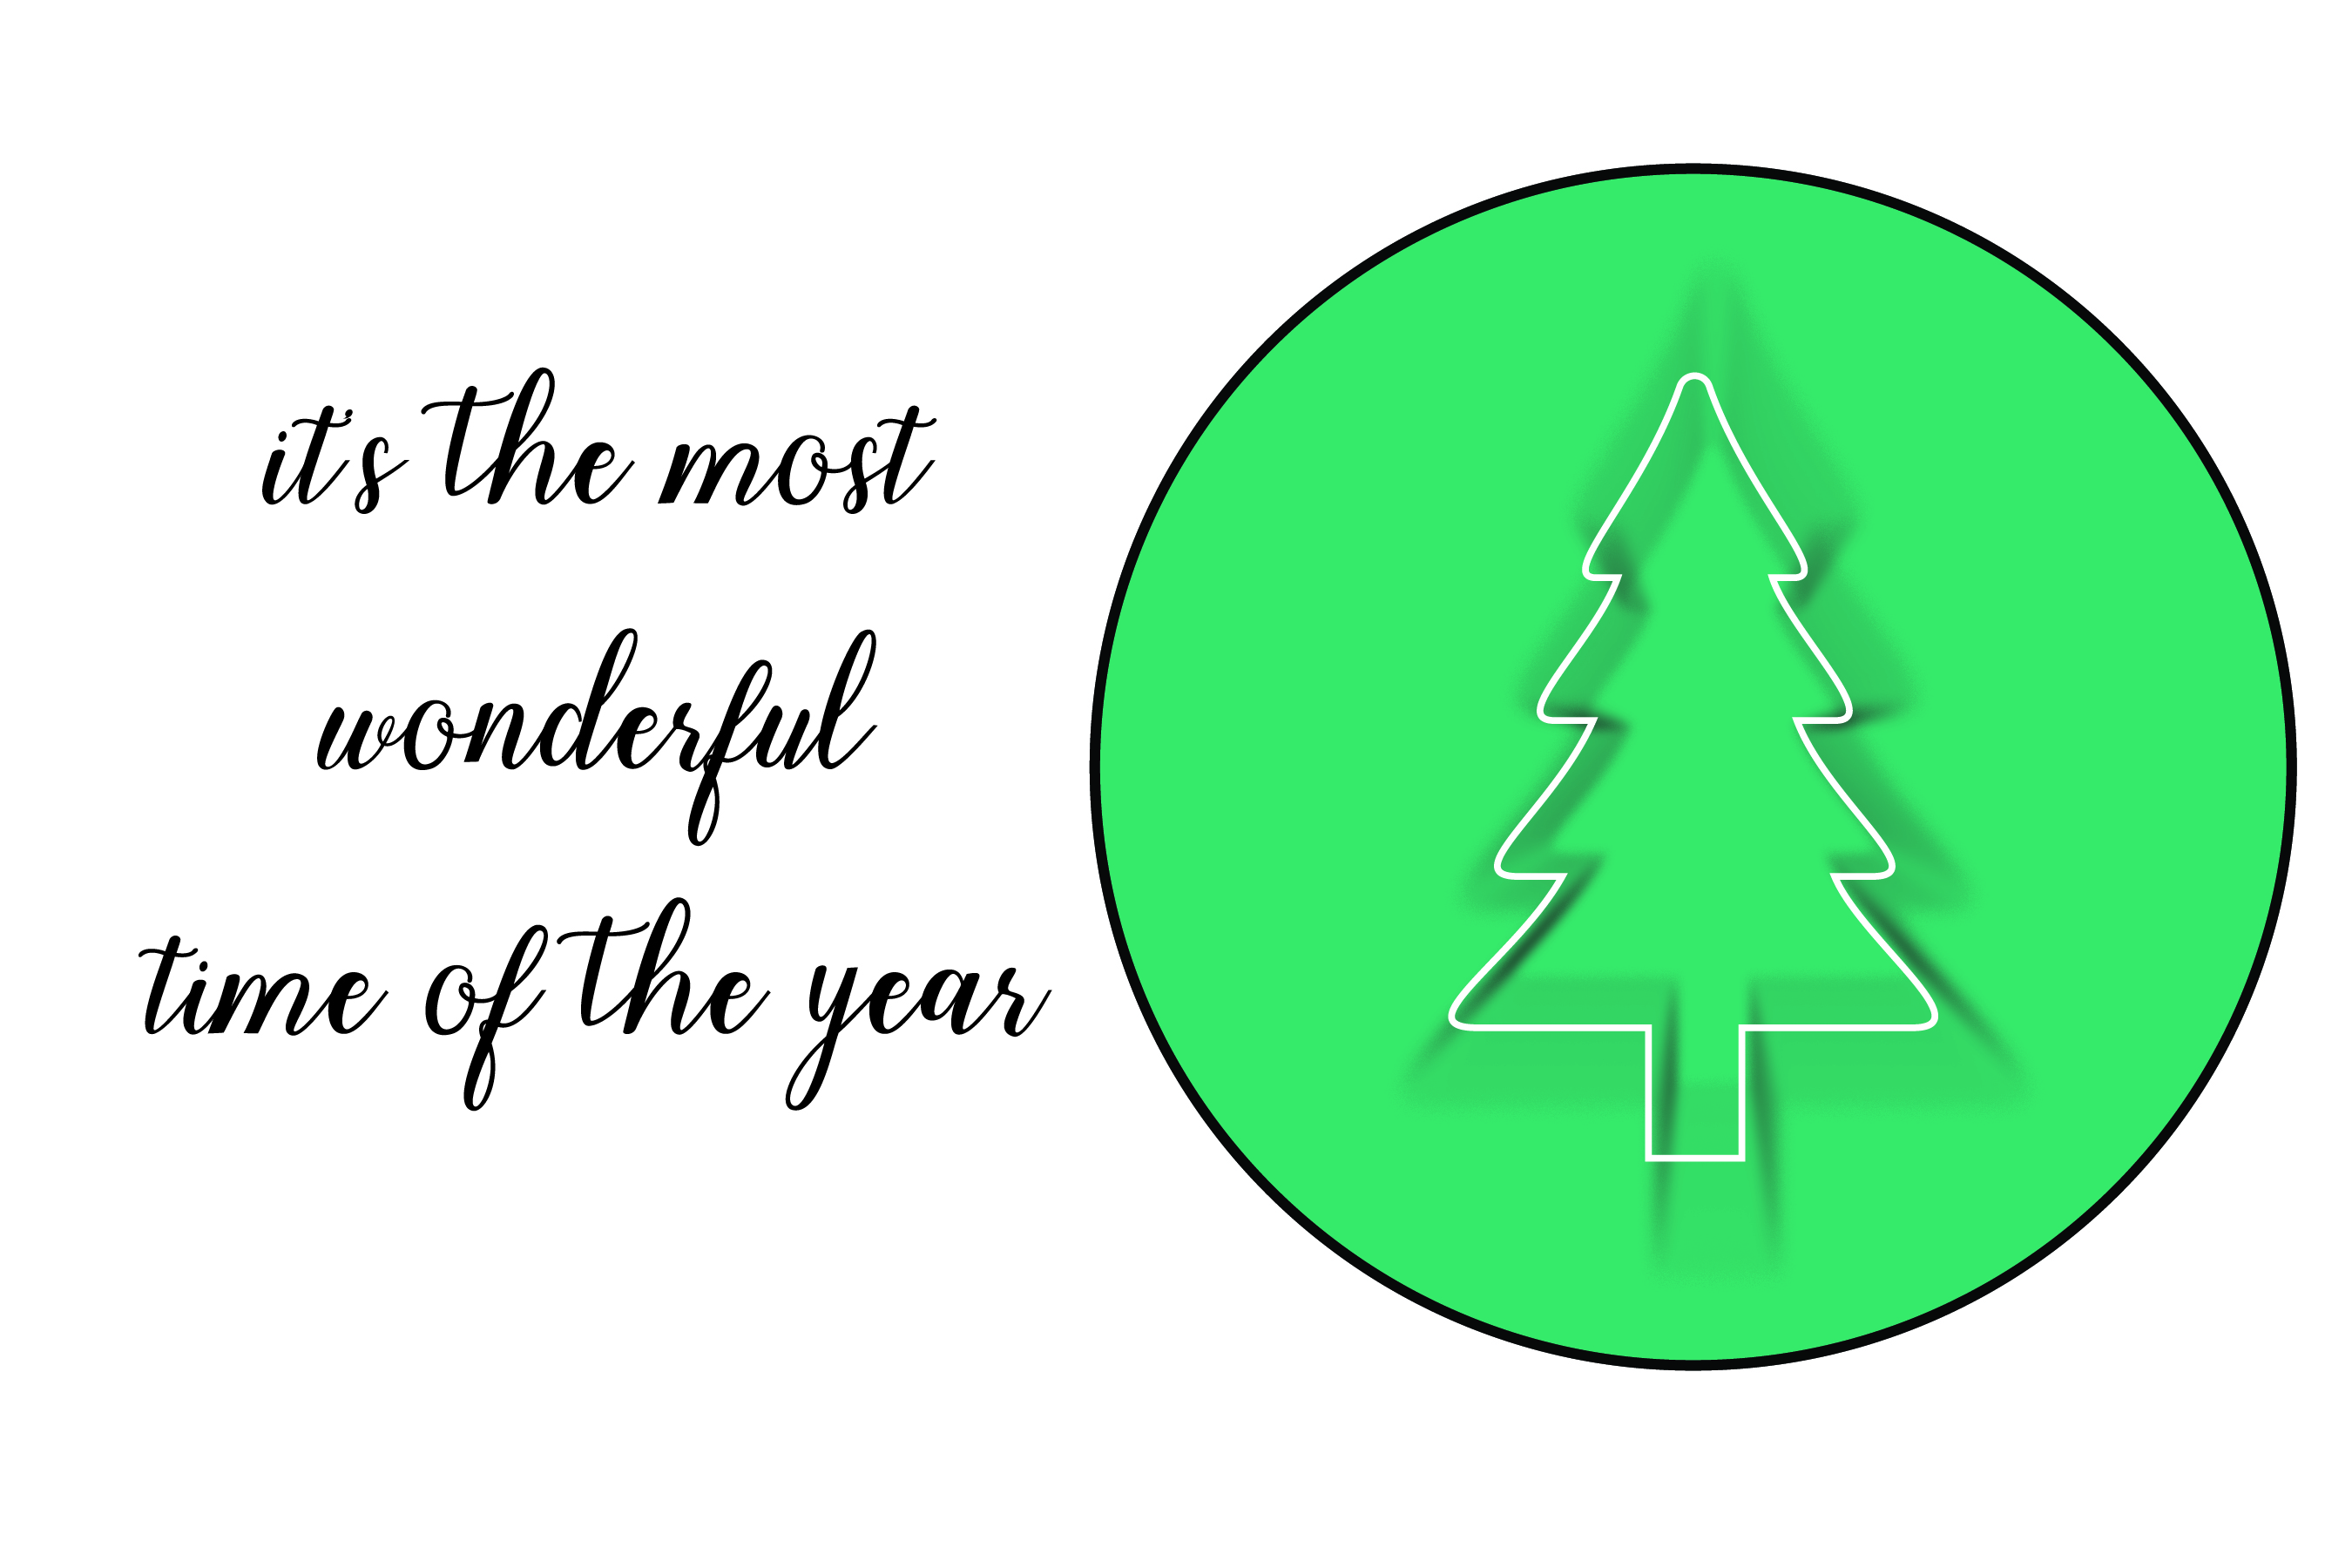 Wonderful time of the year - SVG Bundle 16 Designs example image 6